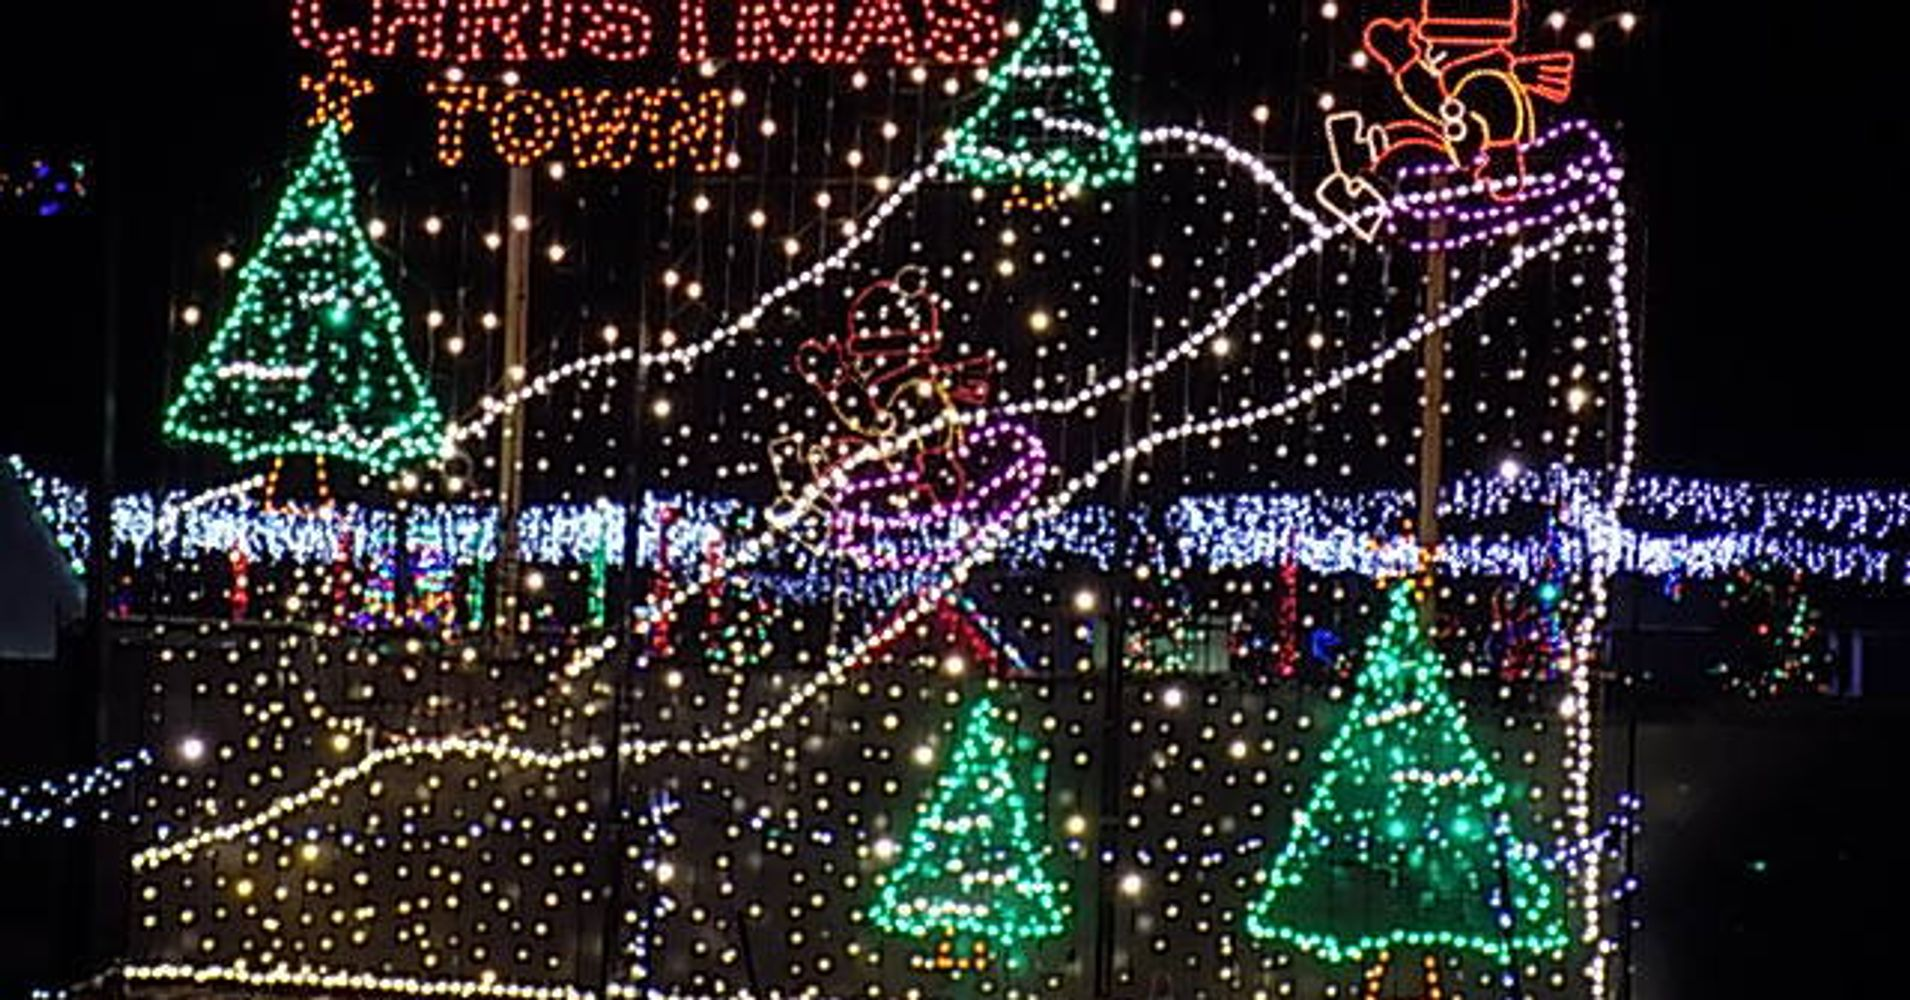 bakersfield california the undiscovered destination even for christmas huffpost - Bakersfield Christmas Town